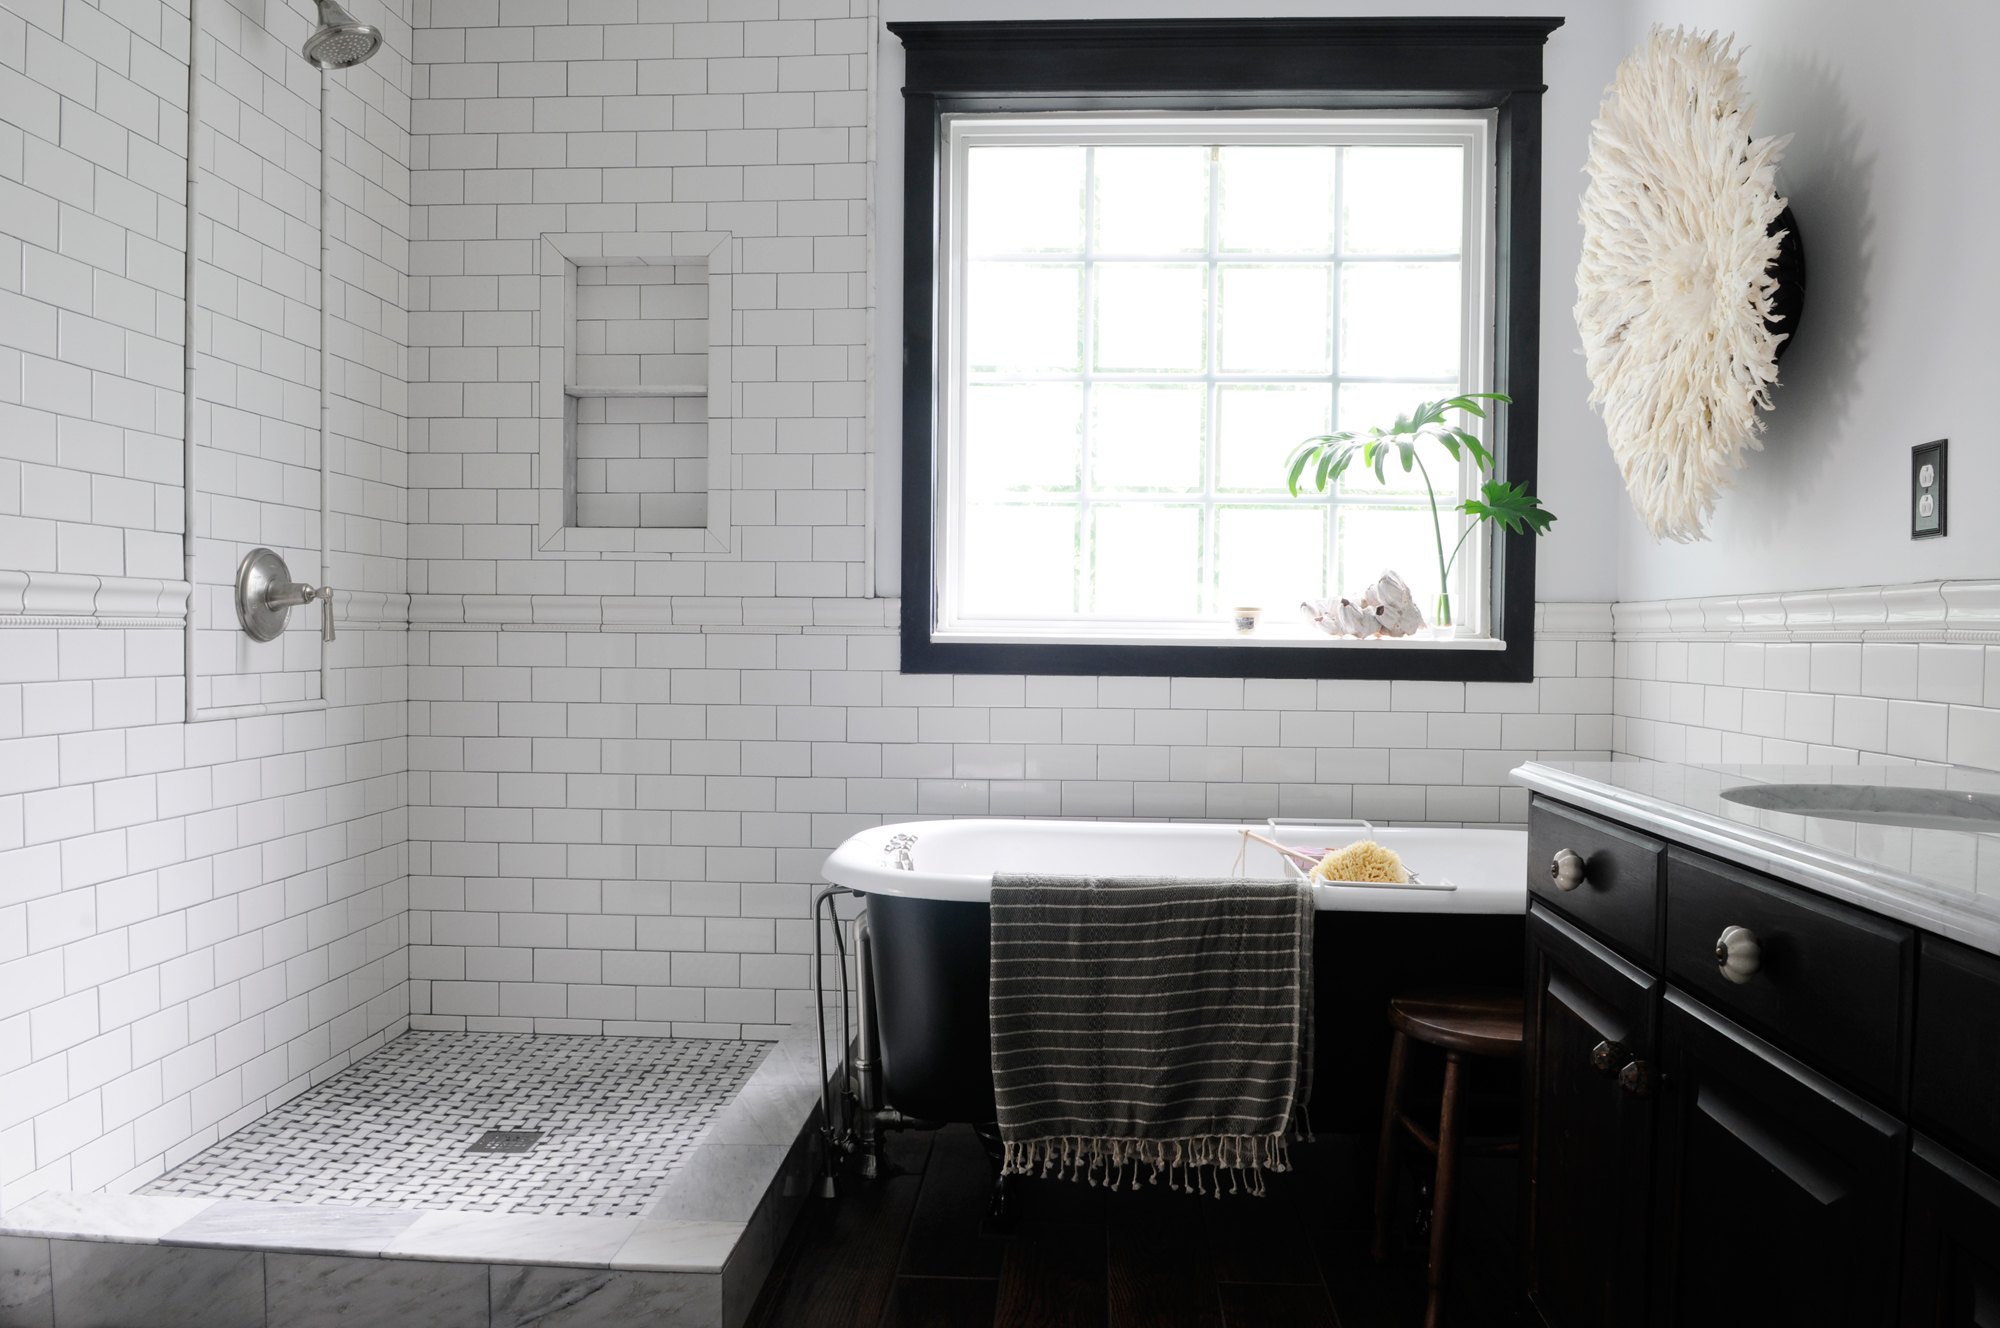 gorgeous-vintage-bathroom-tile-ideas-for-floor-and-walls-vintage-bathroom-ideas-vintage-bathroom-ideas